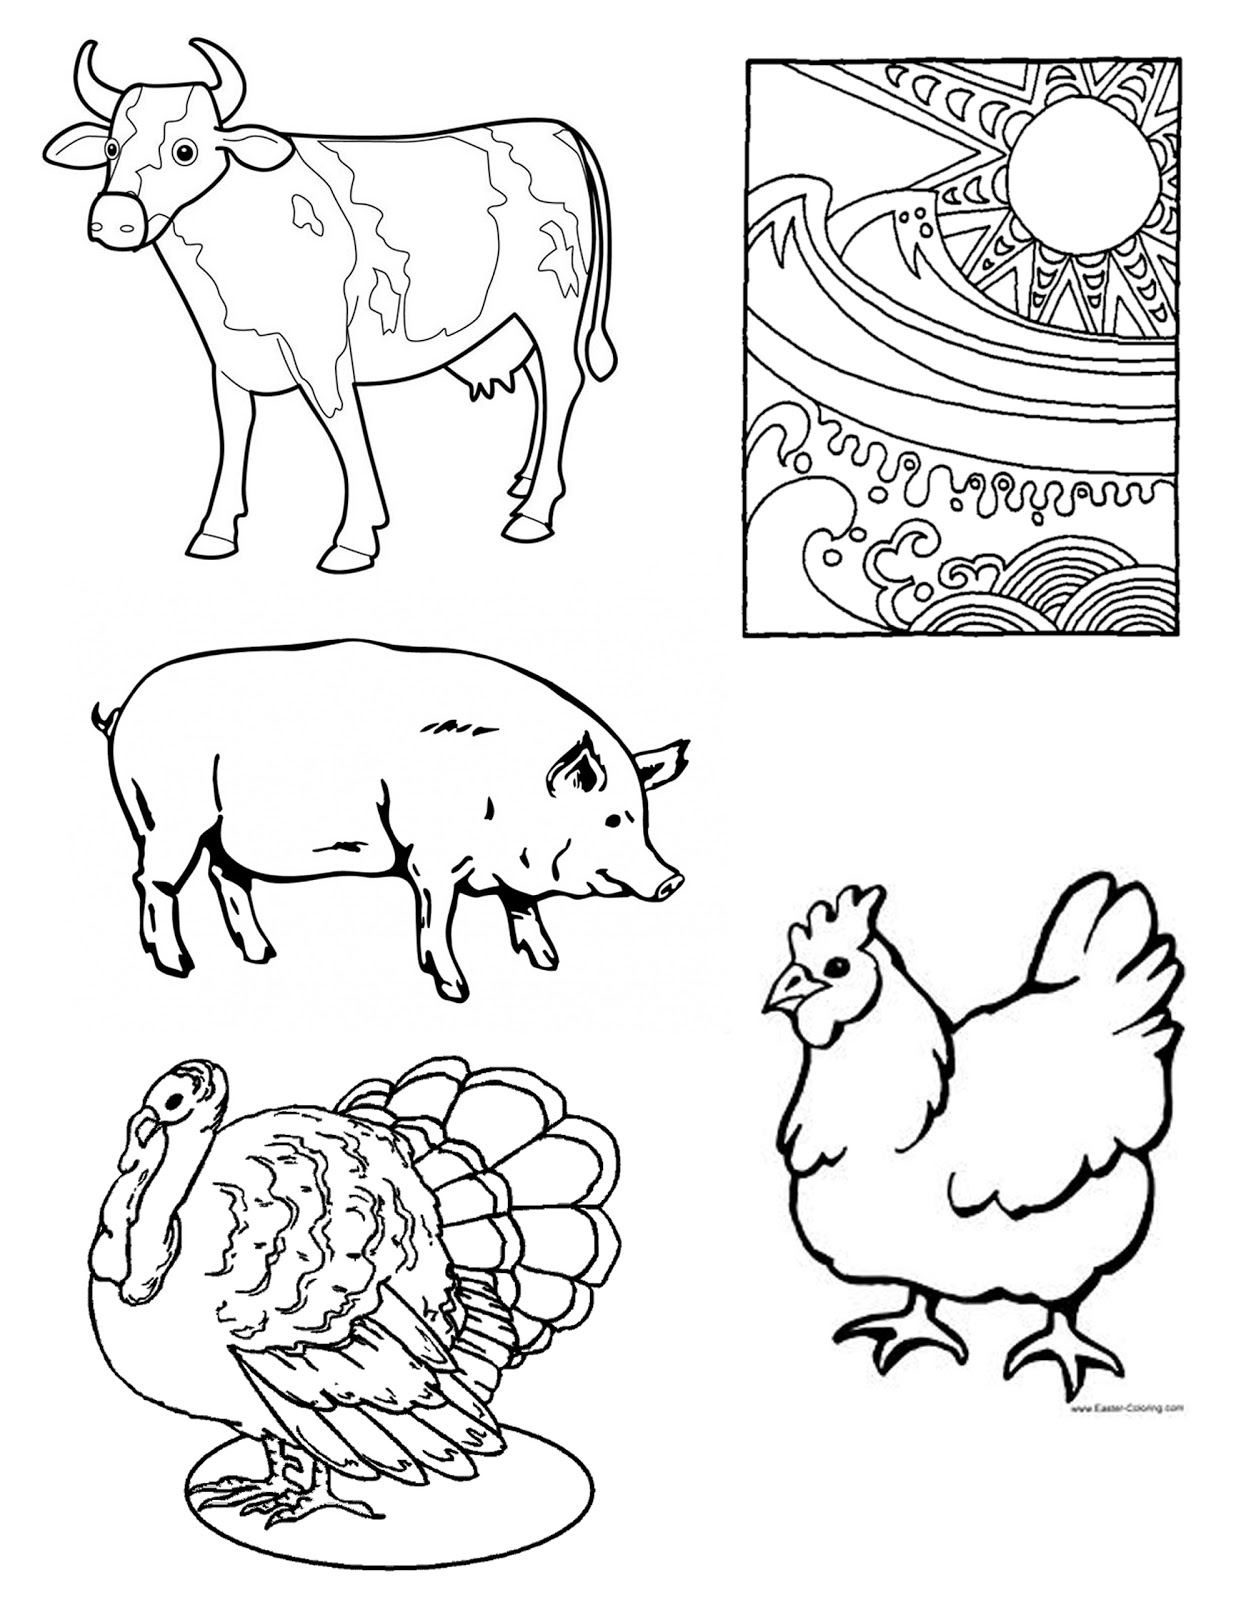 meat coloring pages meat coloring page educationcom pages meat coloring